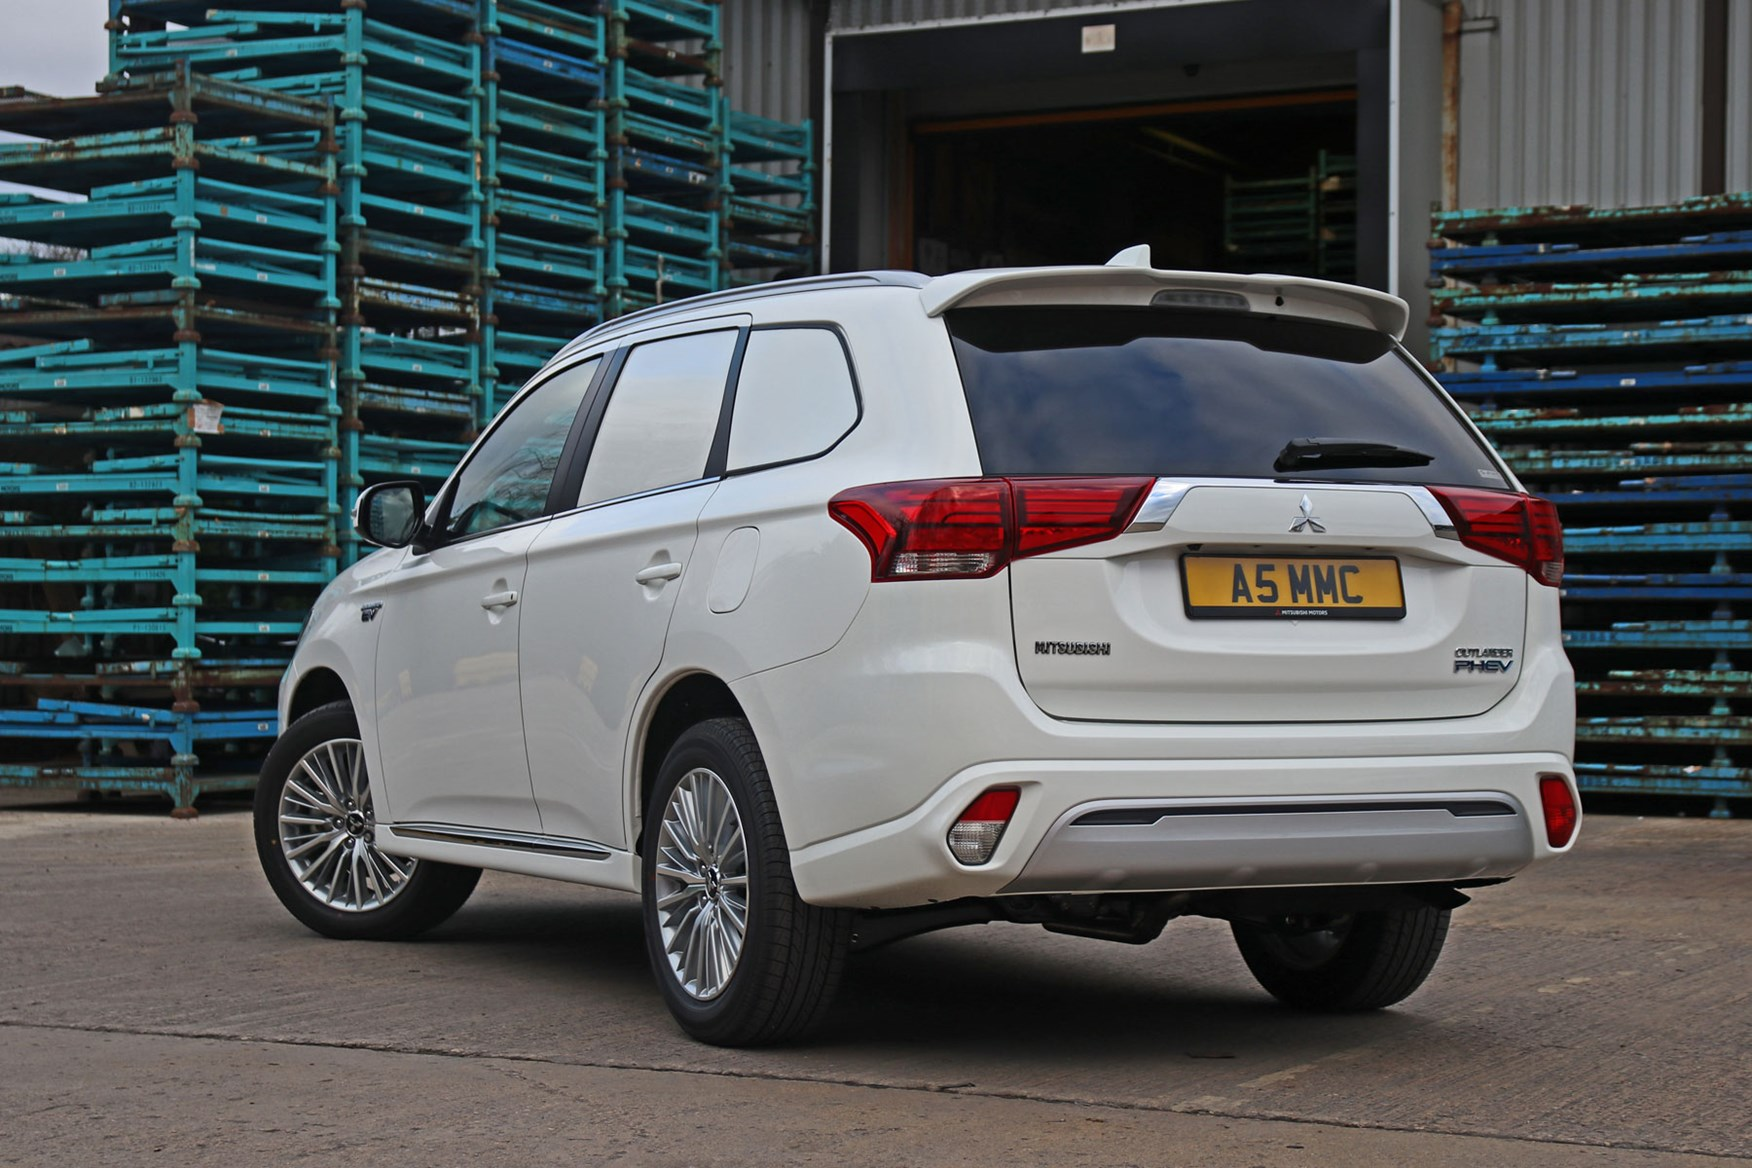 Mitsubishi Outlander Commercial 4x4 van review - 2019 PHEV rear view, white